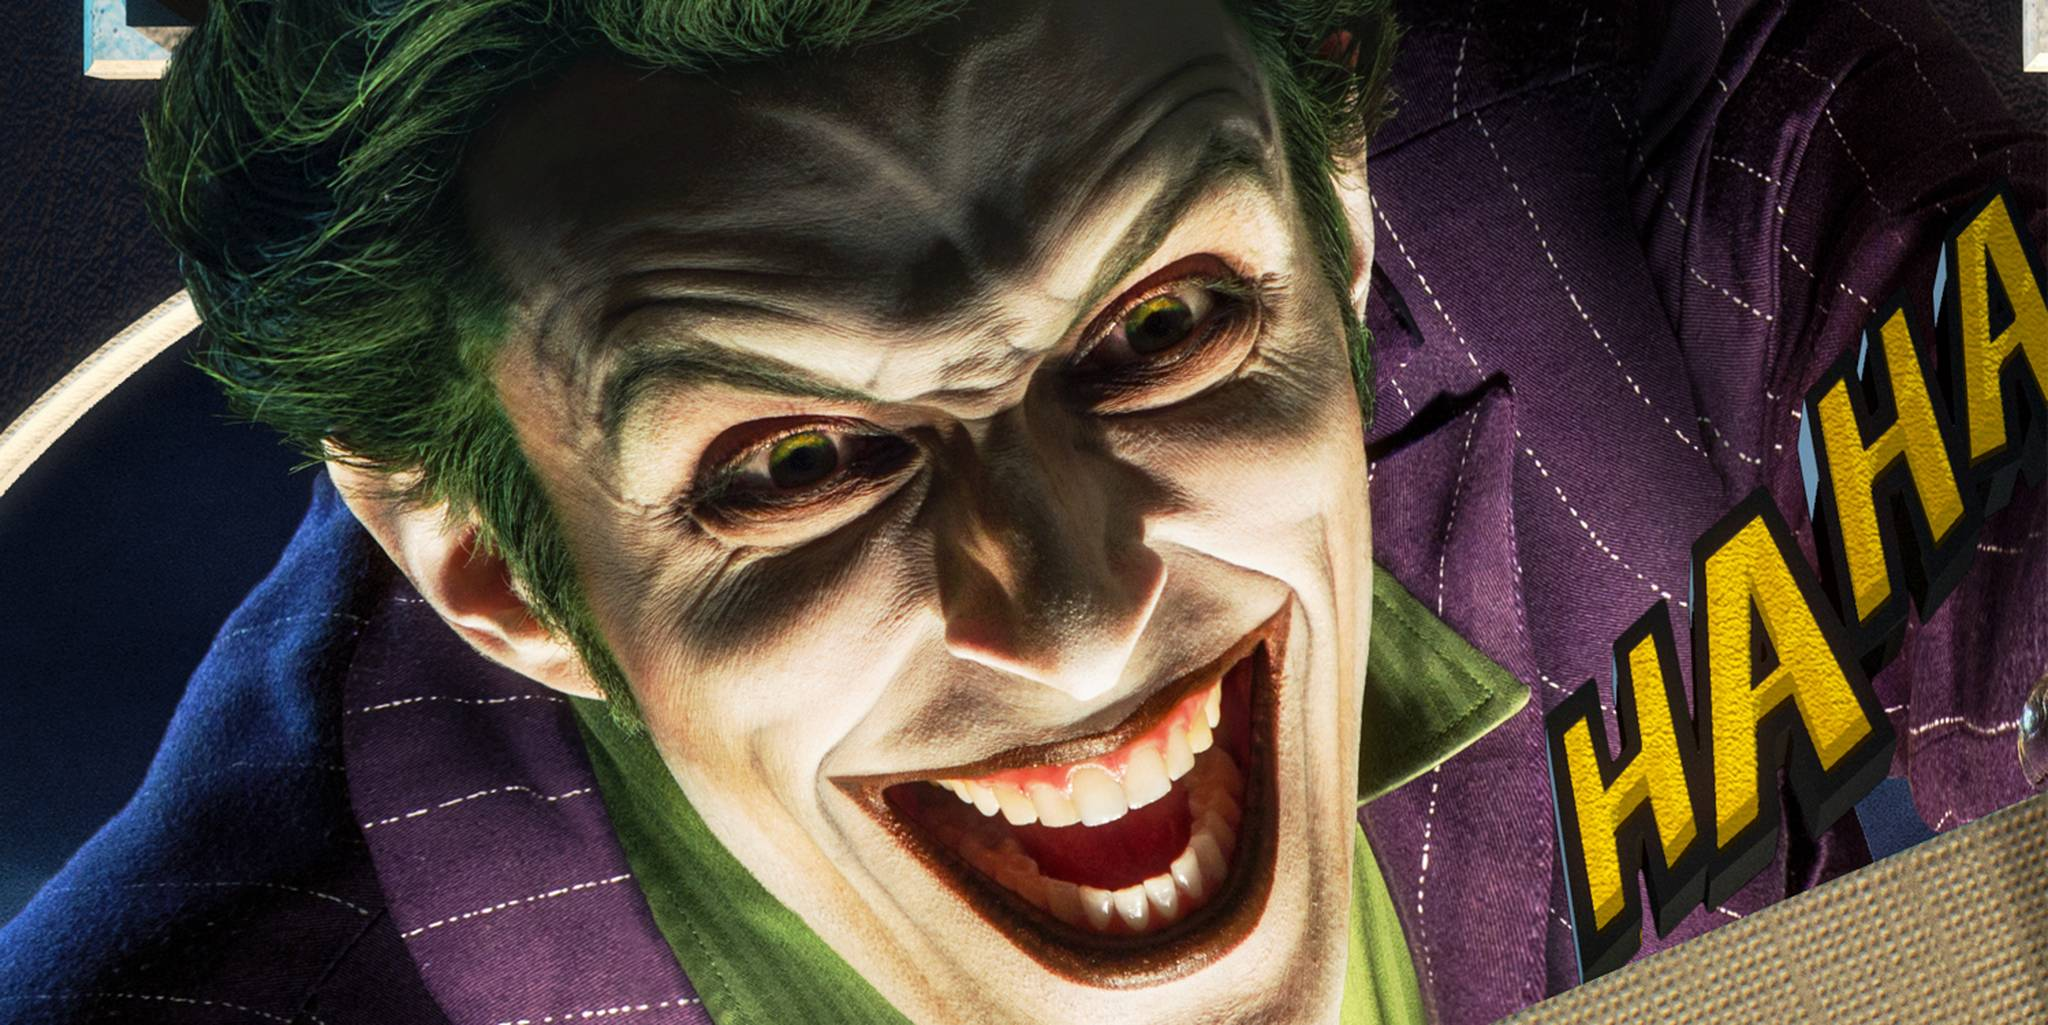 Anthony Misiano the Joker